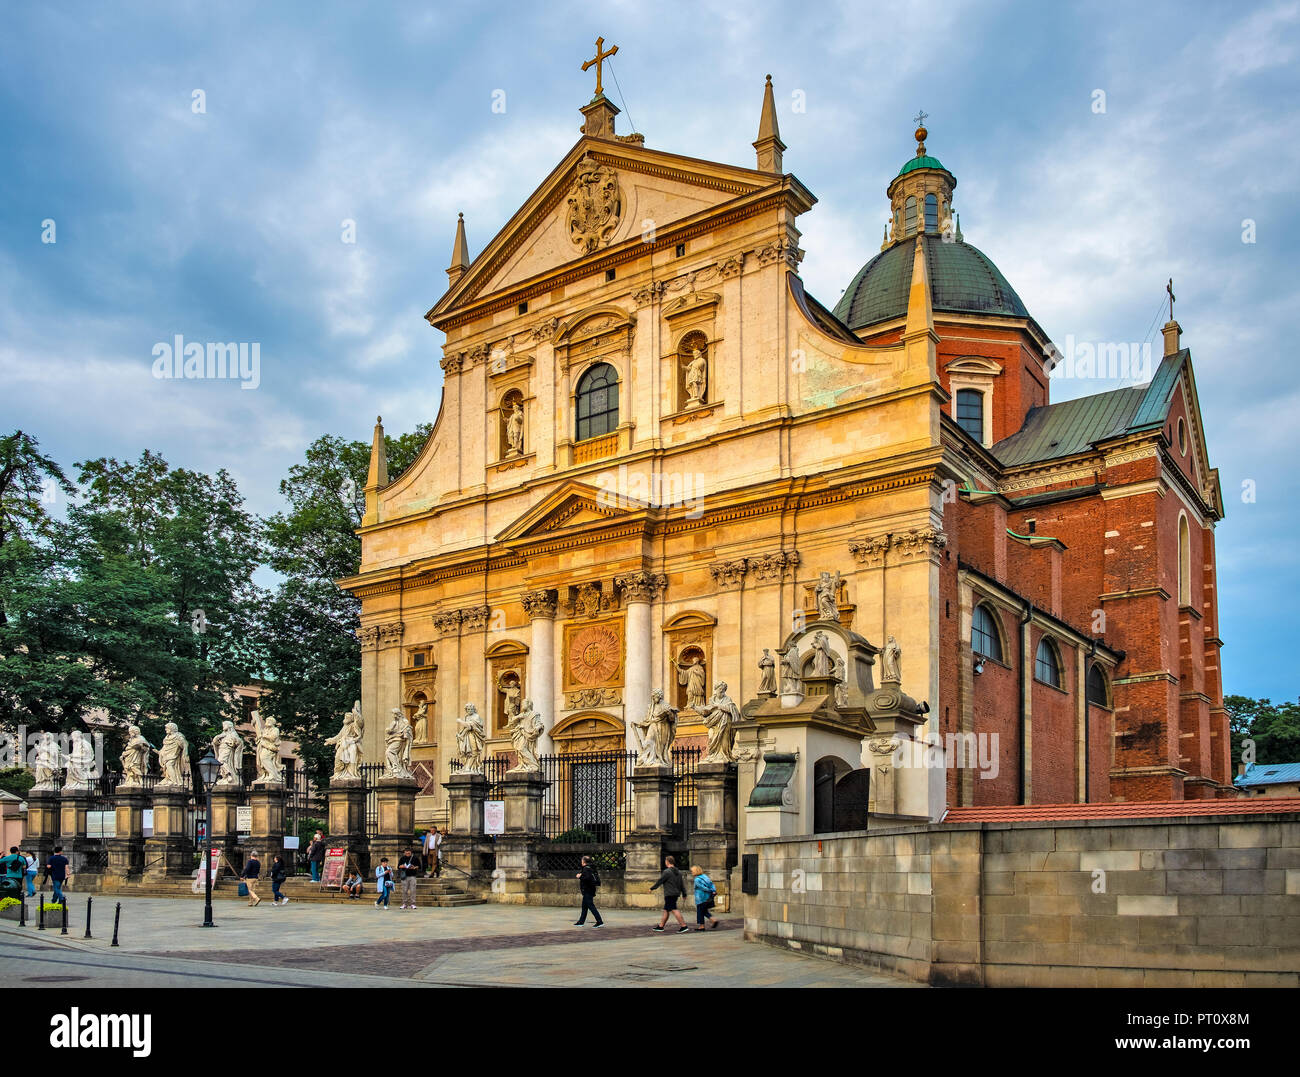 Krakow, Lesser Poland / Poland - 2018/09/08: Cracow Old Town, facade of the St. Peter and Paul church at the Grodzka street - Stock Image